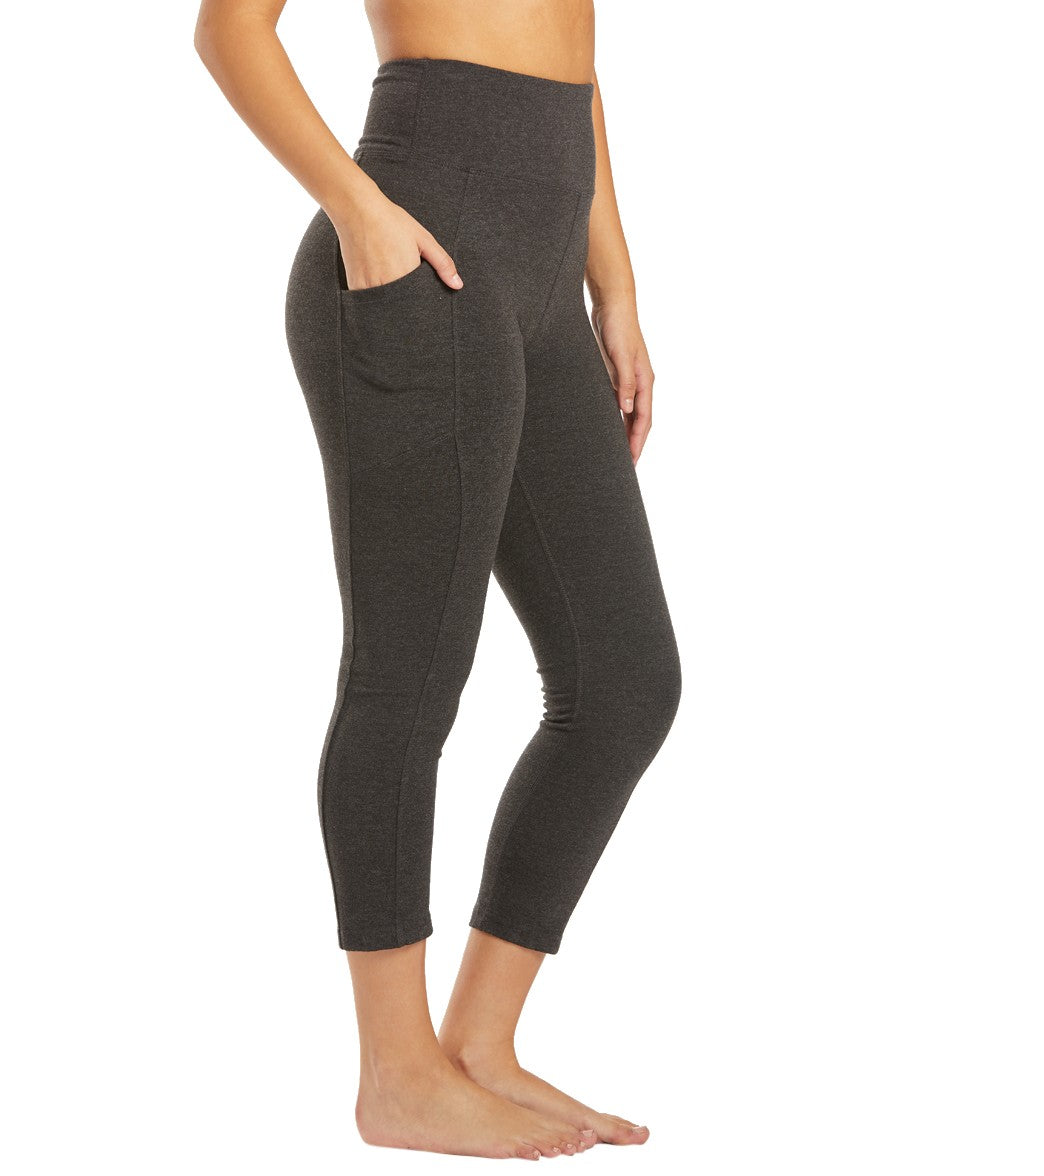 Marika Bailee High Rise Tummy Control Yoga Capri Pants with Pockets - Heather Charcol Cotton